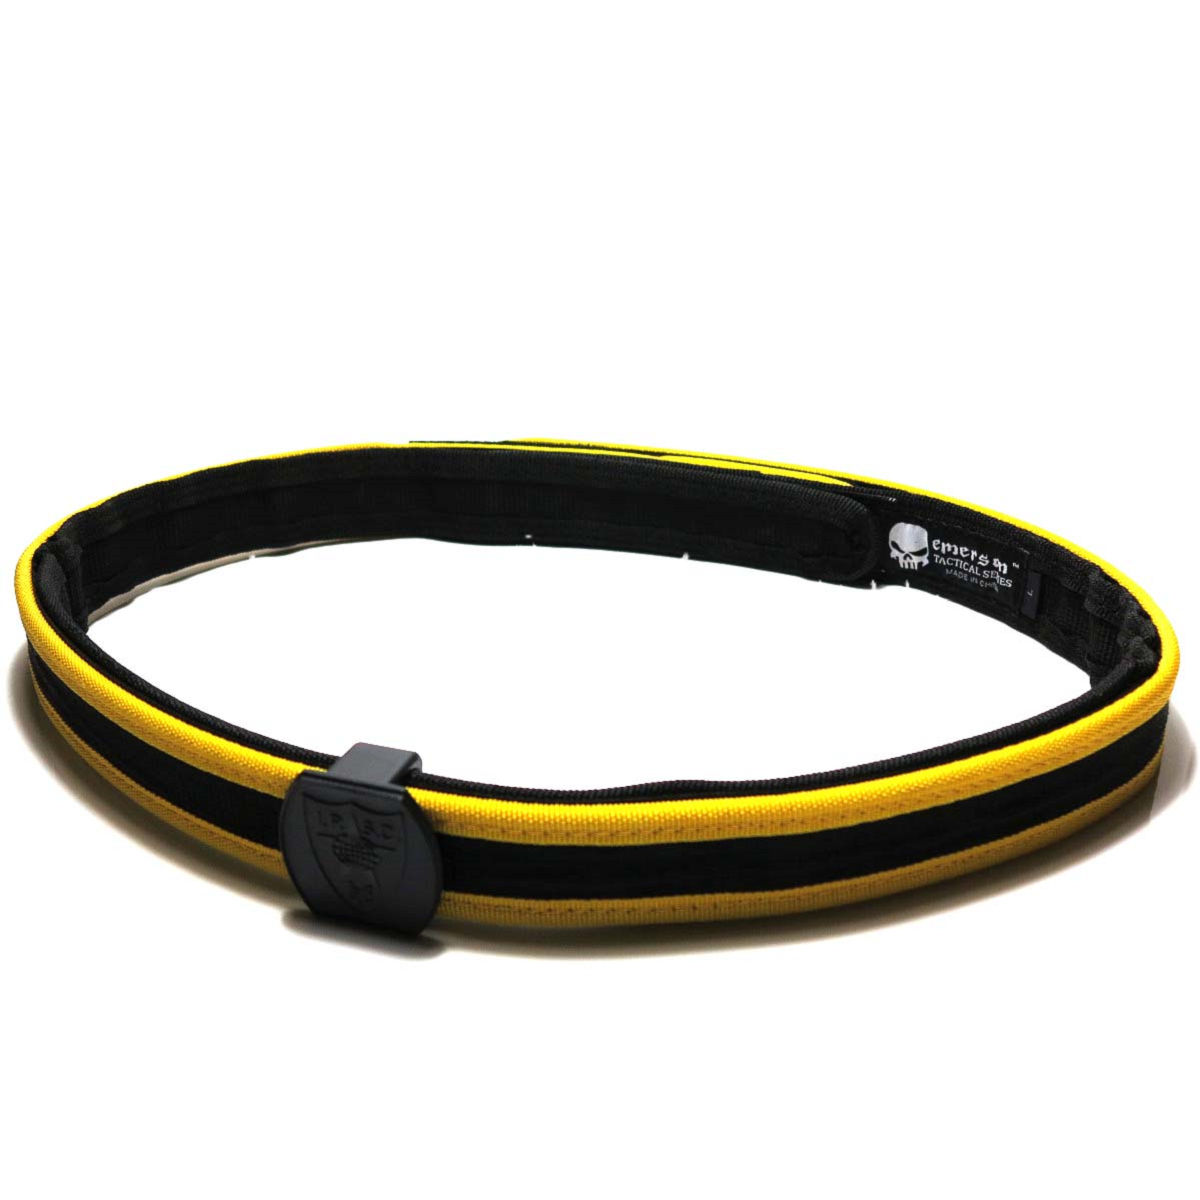 Airsoft SWAT Tactical Combat Gear Big Dragon IPSC BD2353 Special Shooting Belt Black/Yellow